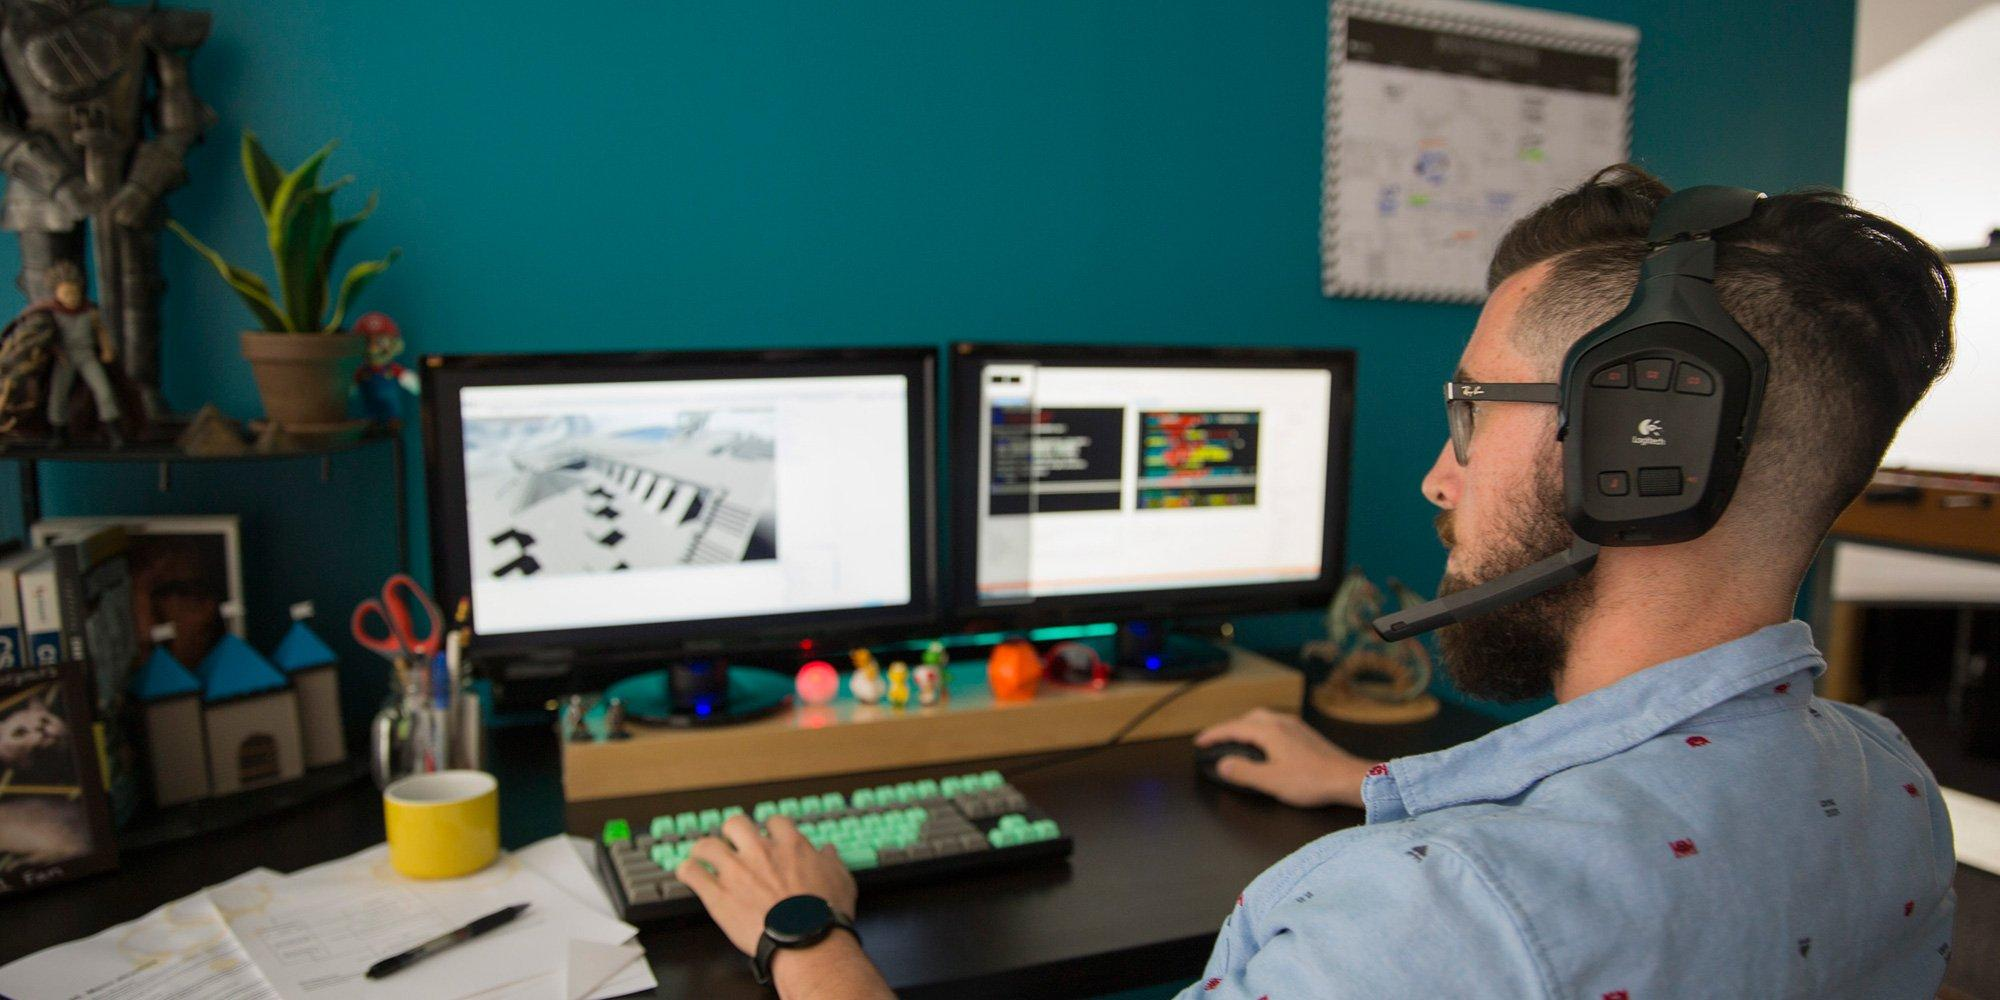 Game Design Bachelors Degree Full Sail University - Game design